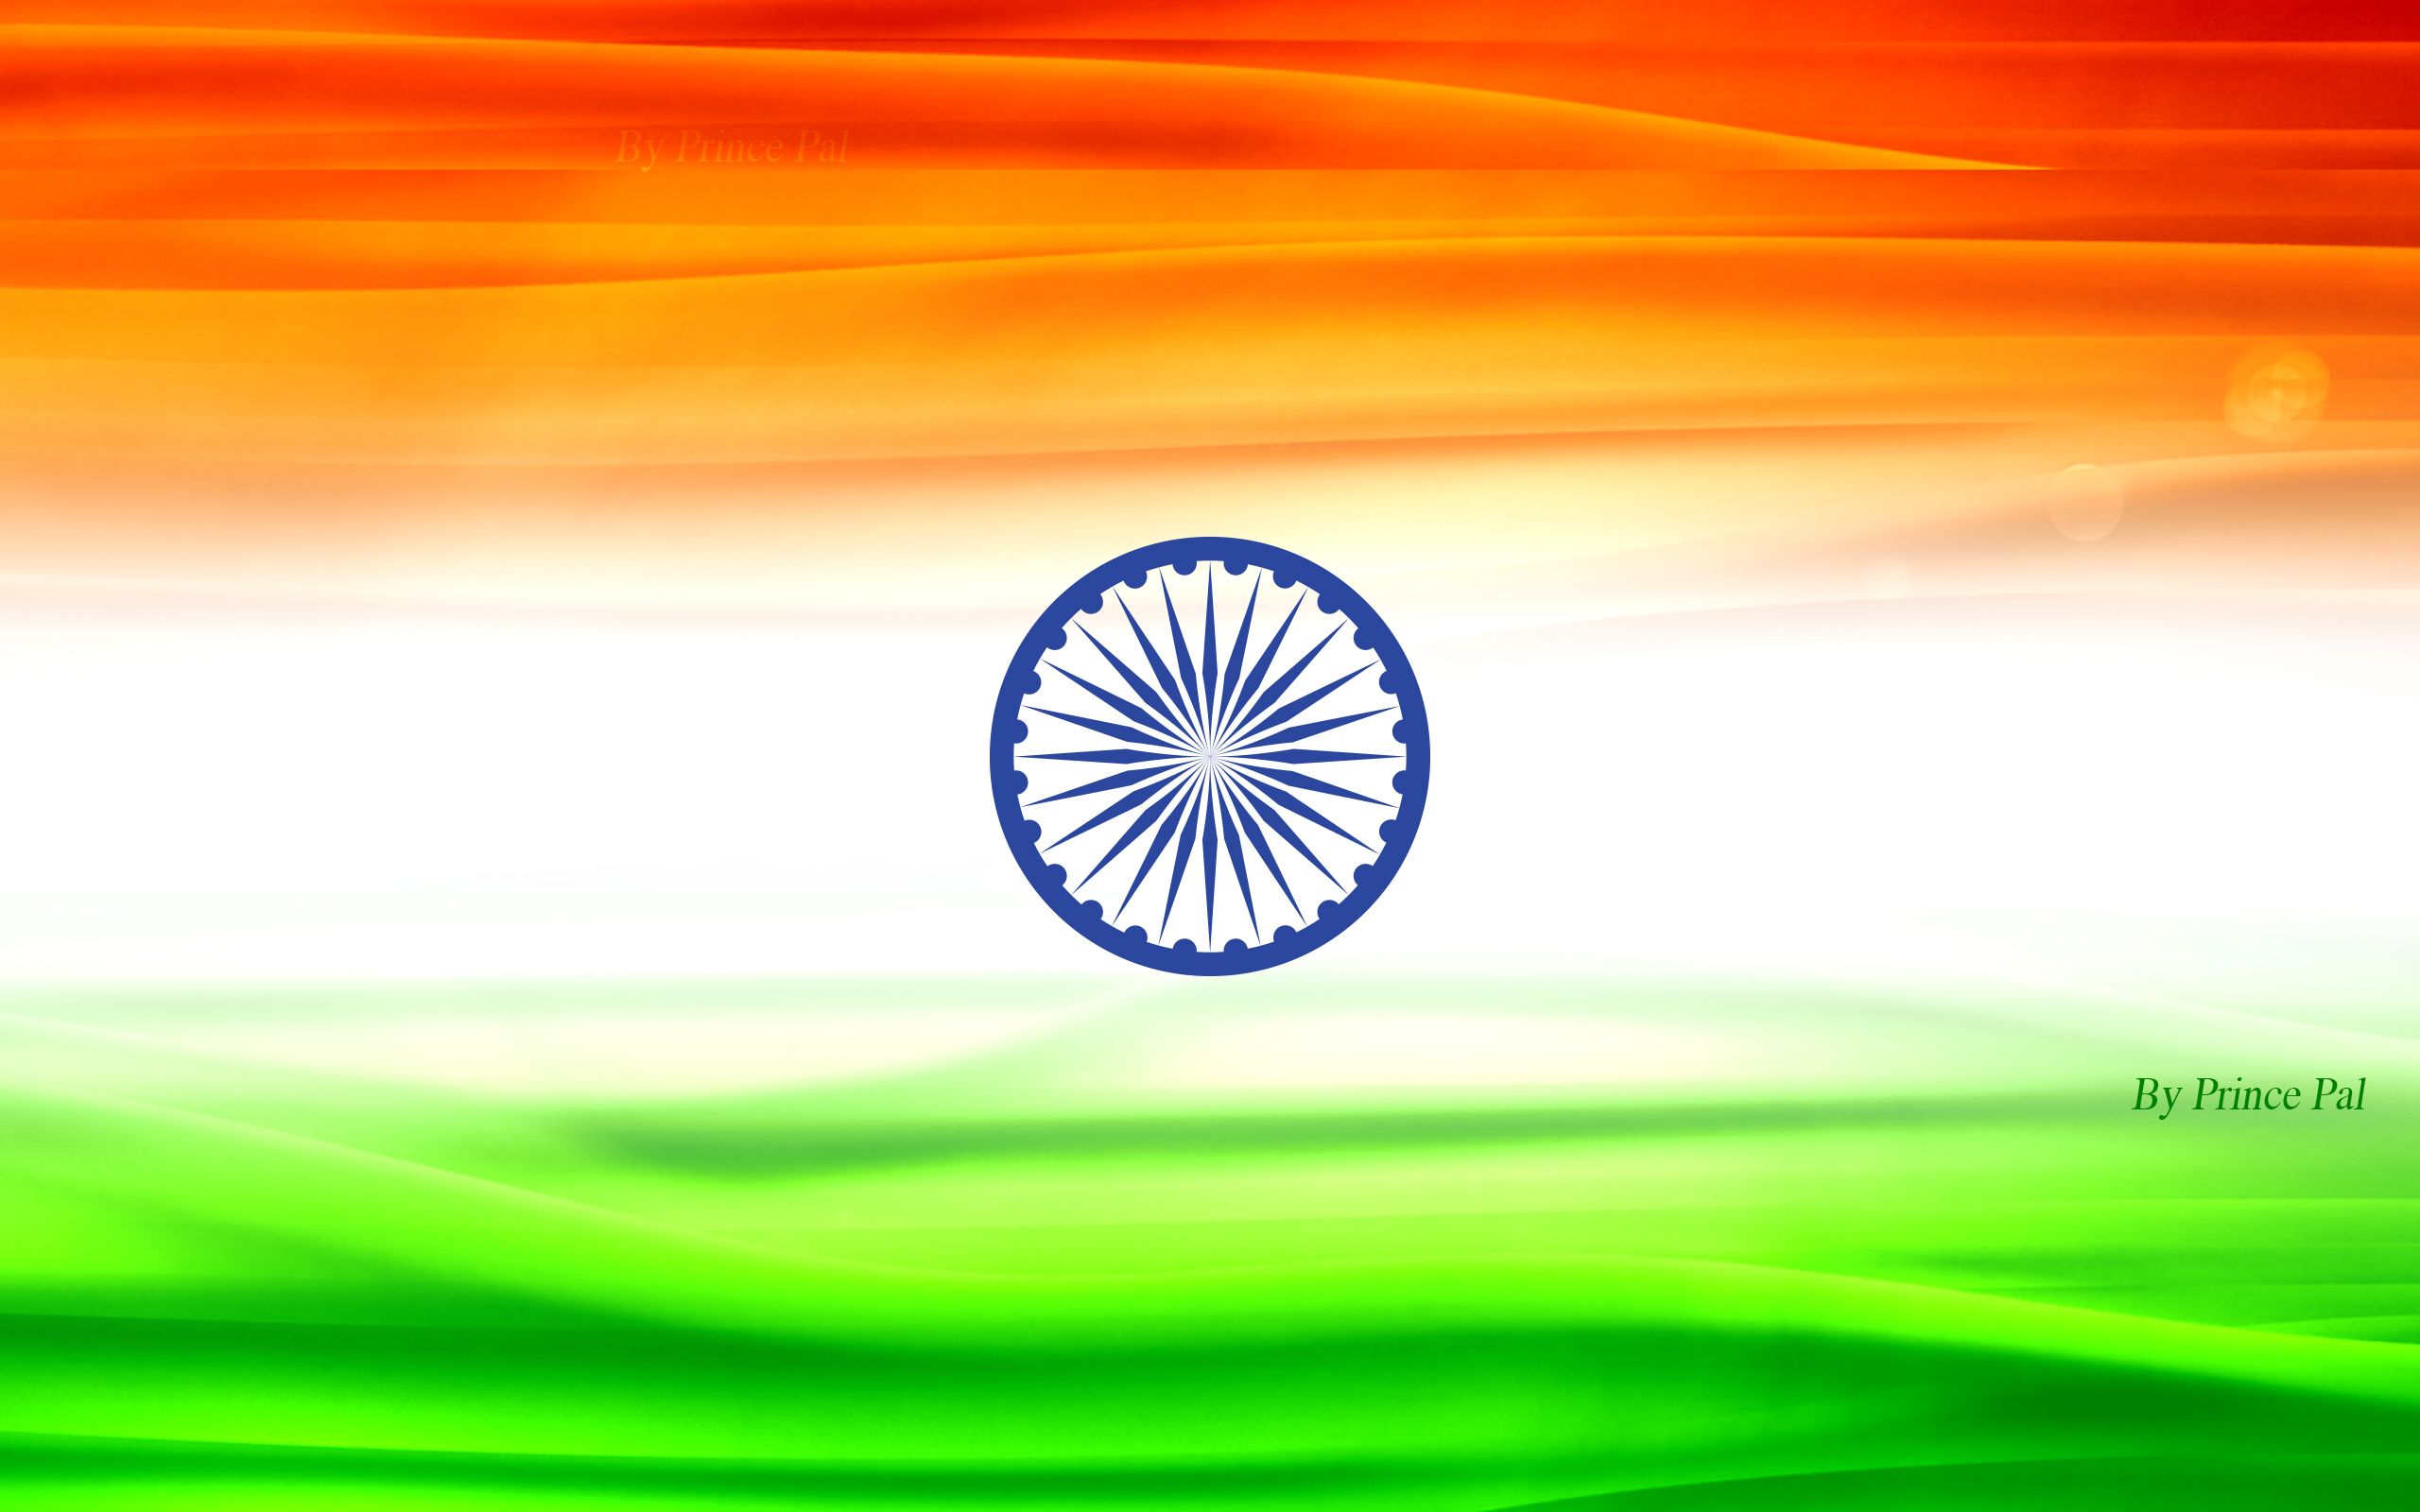 Indian Flag Hd Wallpaper: Indian Flag HD Images For Whatsapp DP